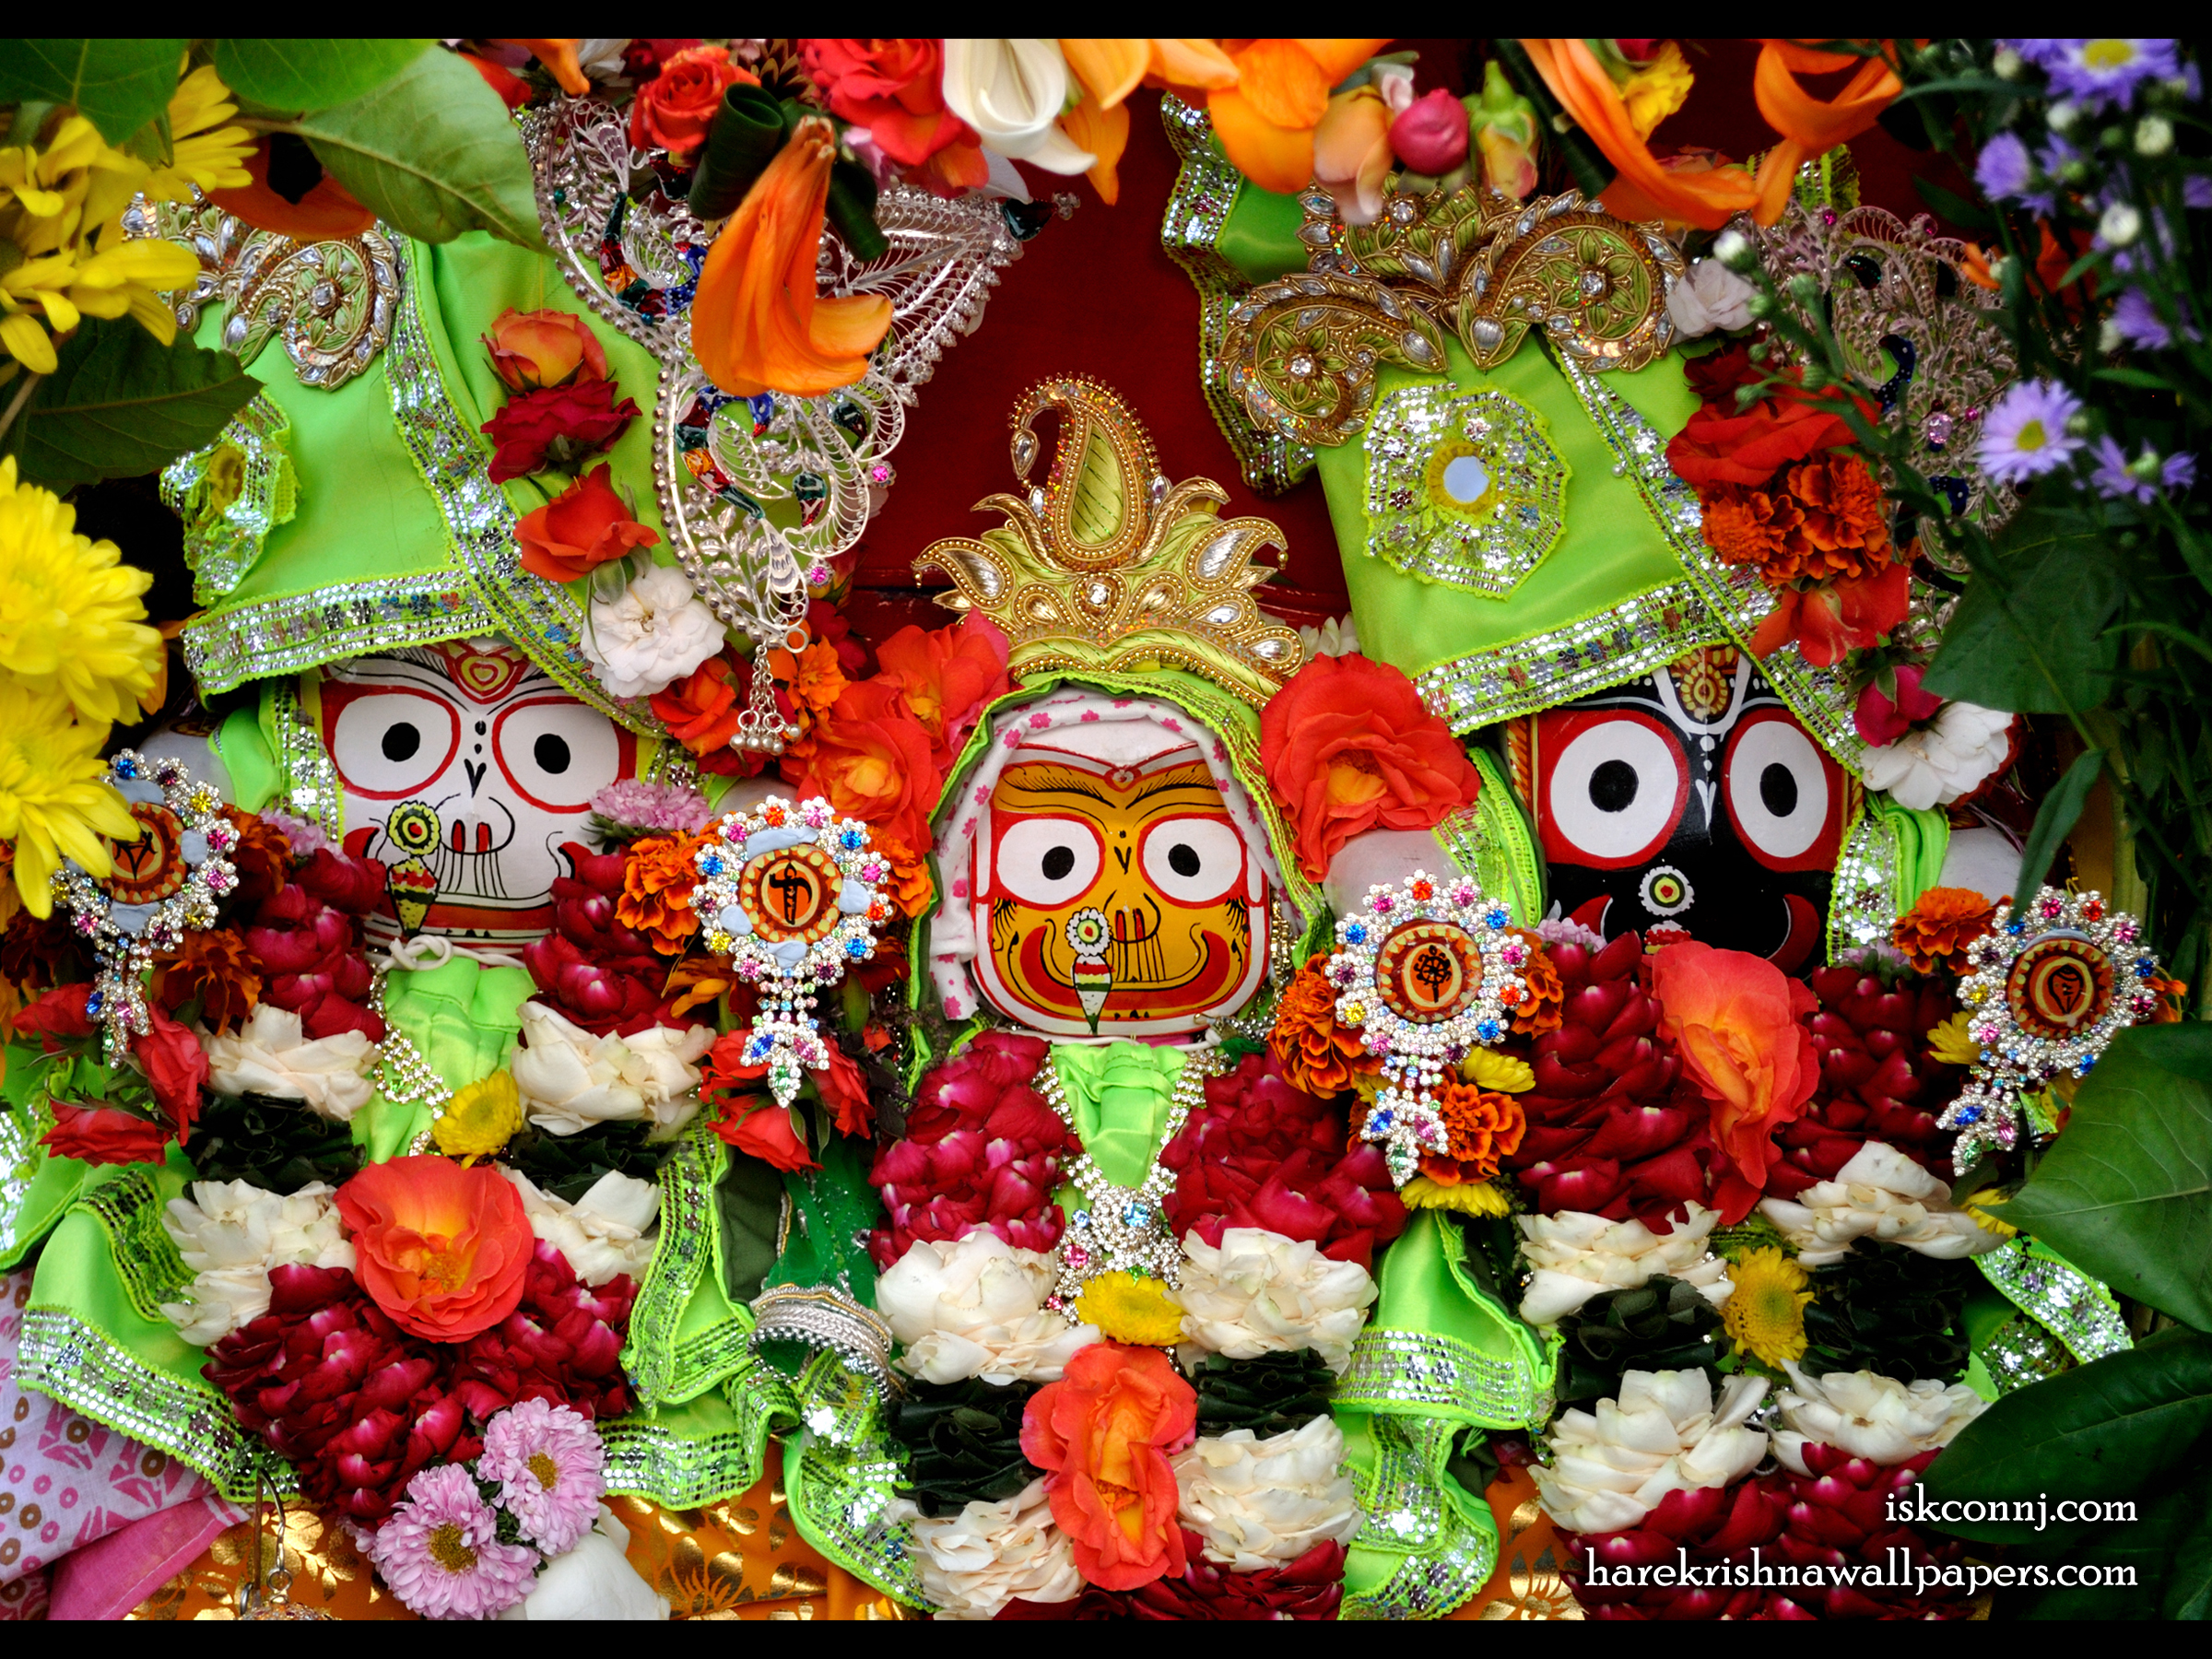 Jagannath Baladeva Subhadra Wallpaper (006) Size 2400x1800 Download